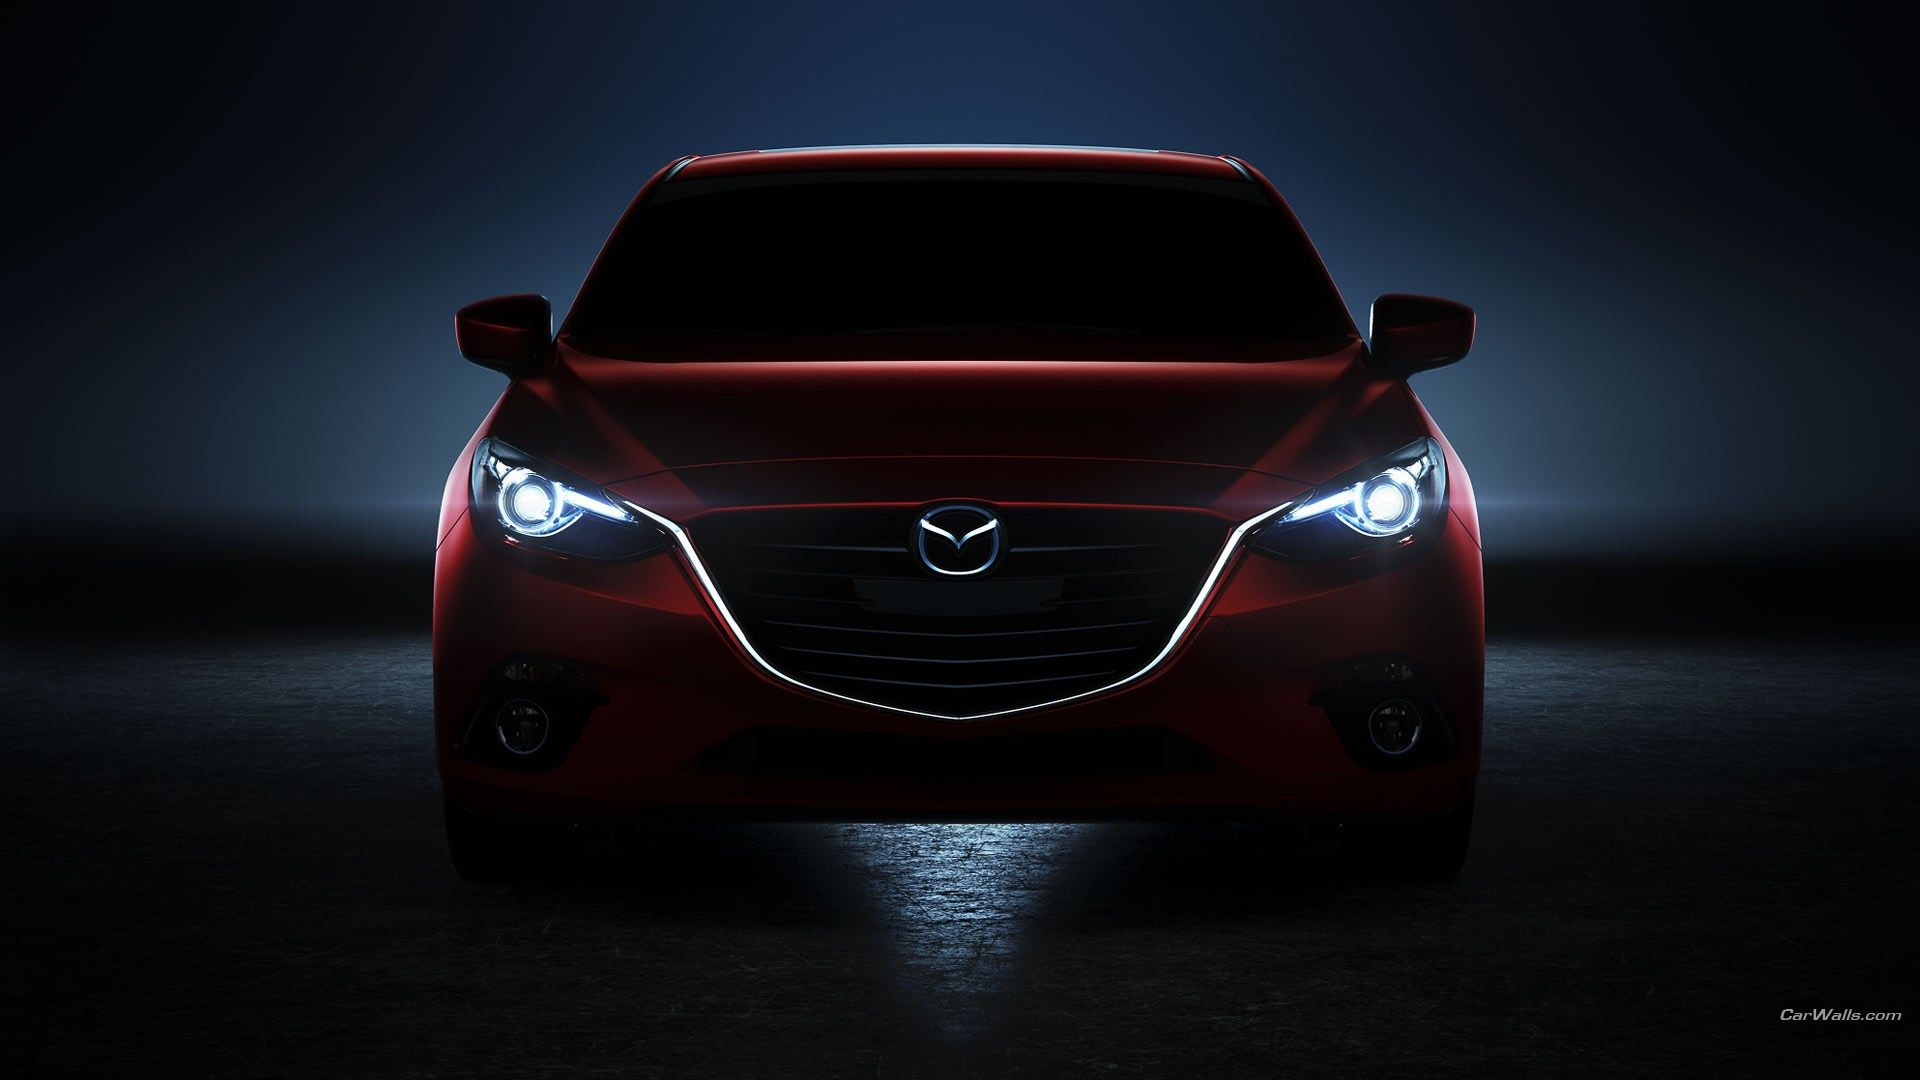 channing young 2014 mazda 3 themed wallpaper for desktops